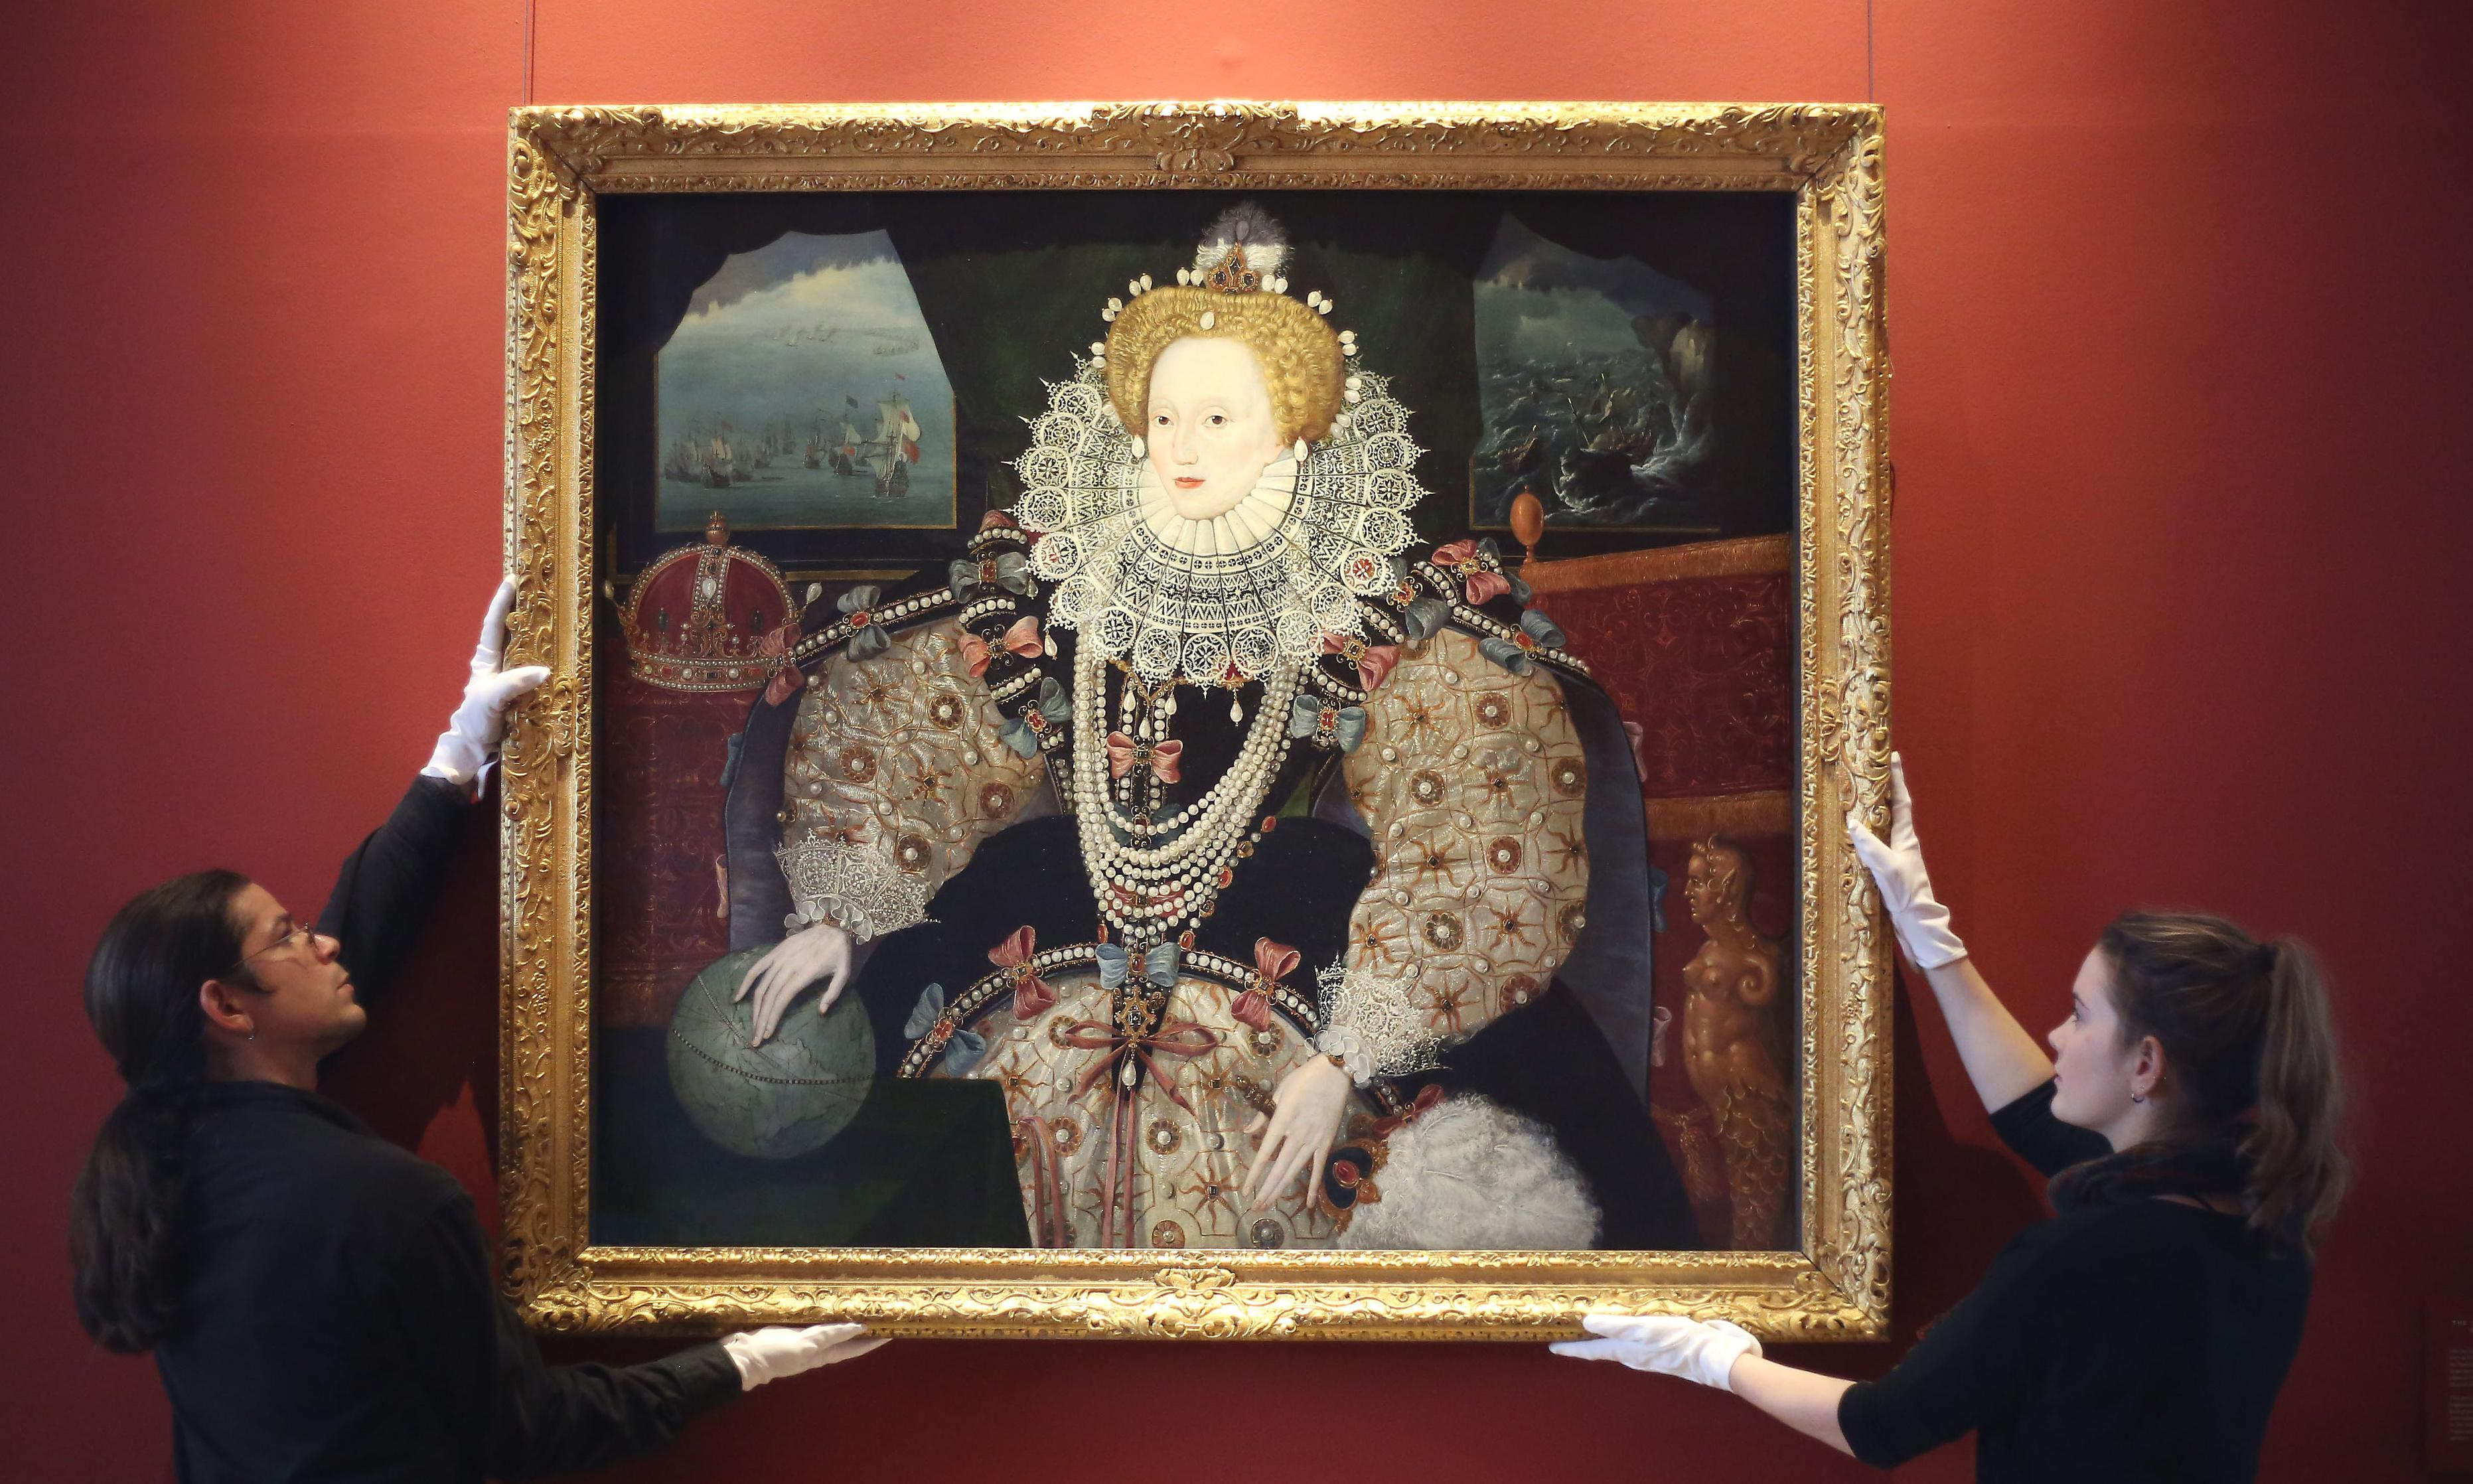 Armada portraits of Elizabeth I on show together for first time